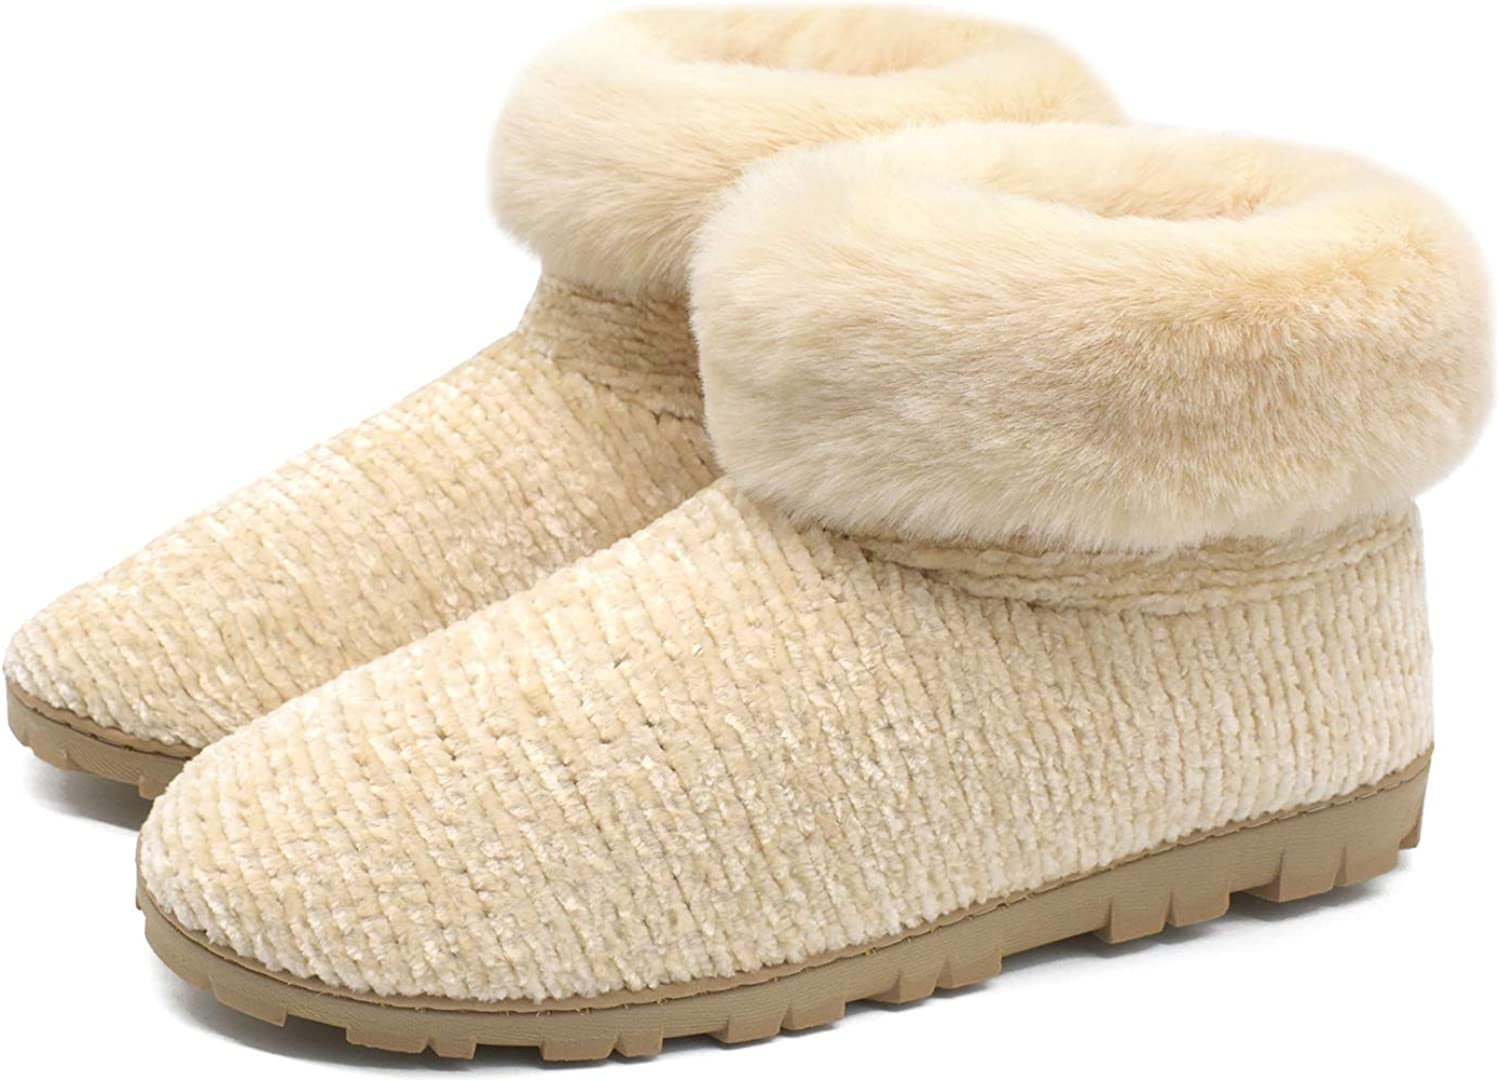 ONCAI Women's-Chenille-Boots-Slippers-Fluffy-House-Ankle-Booties Memory Foam Fur Lined Slipper Boots,Fashion Outdoor & Indoor Black Booties,Winter Warm Plush Vintage Cute House Bedroom Shoes